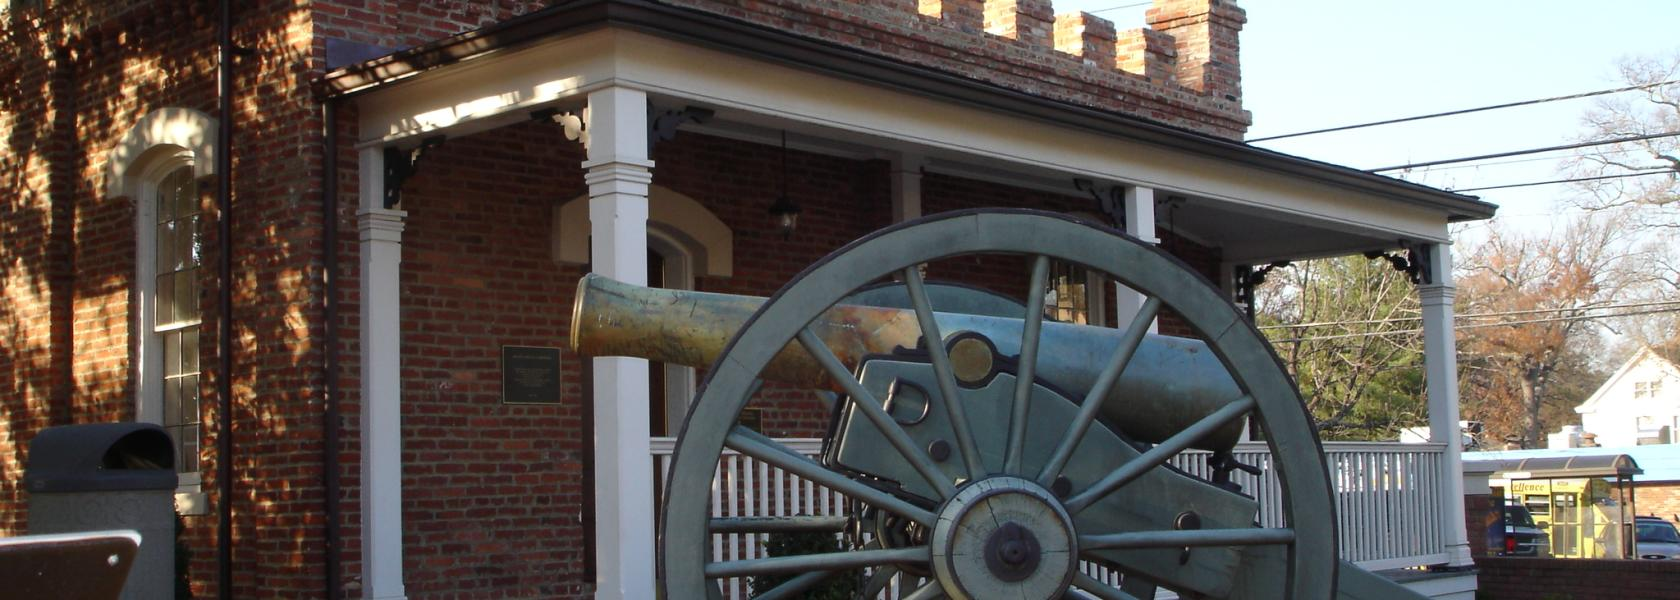 cannon in front of brick building